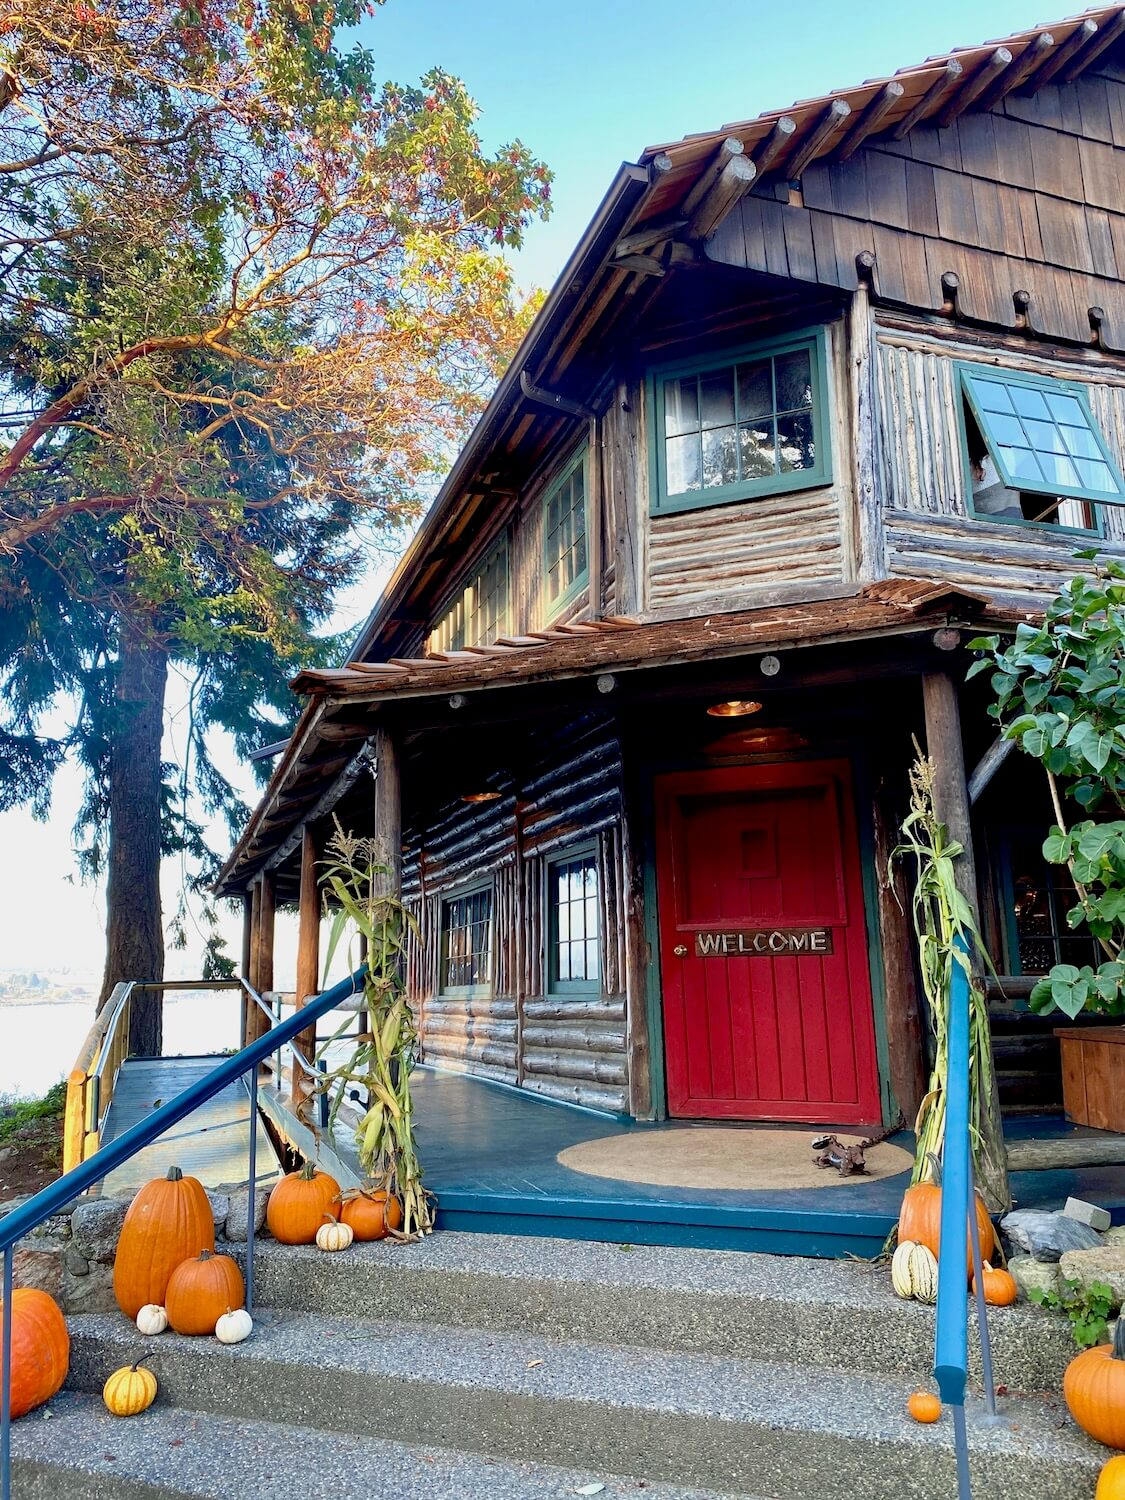 """The entrance to Captain Whidbey Inn has a bright red door with a sign painted on brown wood that reads """"Welcome."""" There are orange pumpkins lining the three steps up from the road to the greenish blue decking that is part of the wrap around porch. The side of the budding is log cabin style with a blue sky above and next to a madrone tree."""